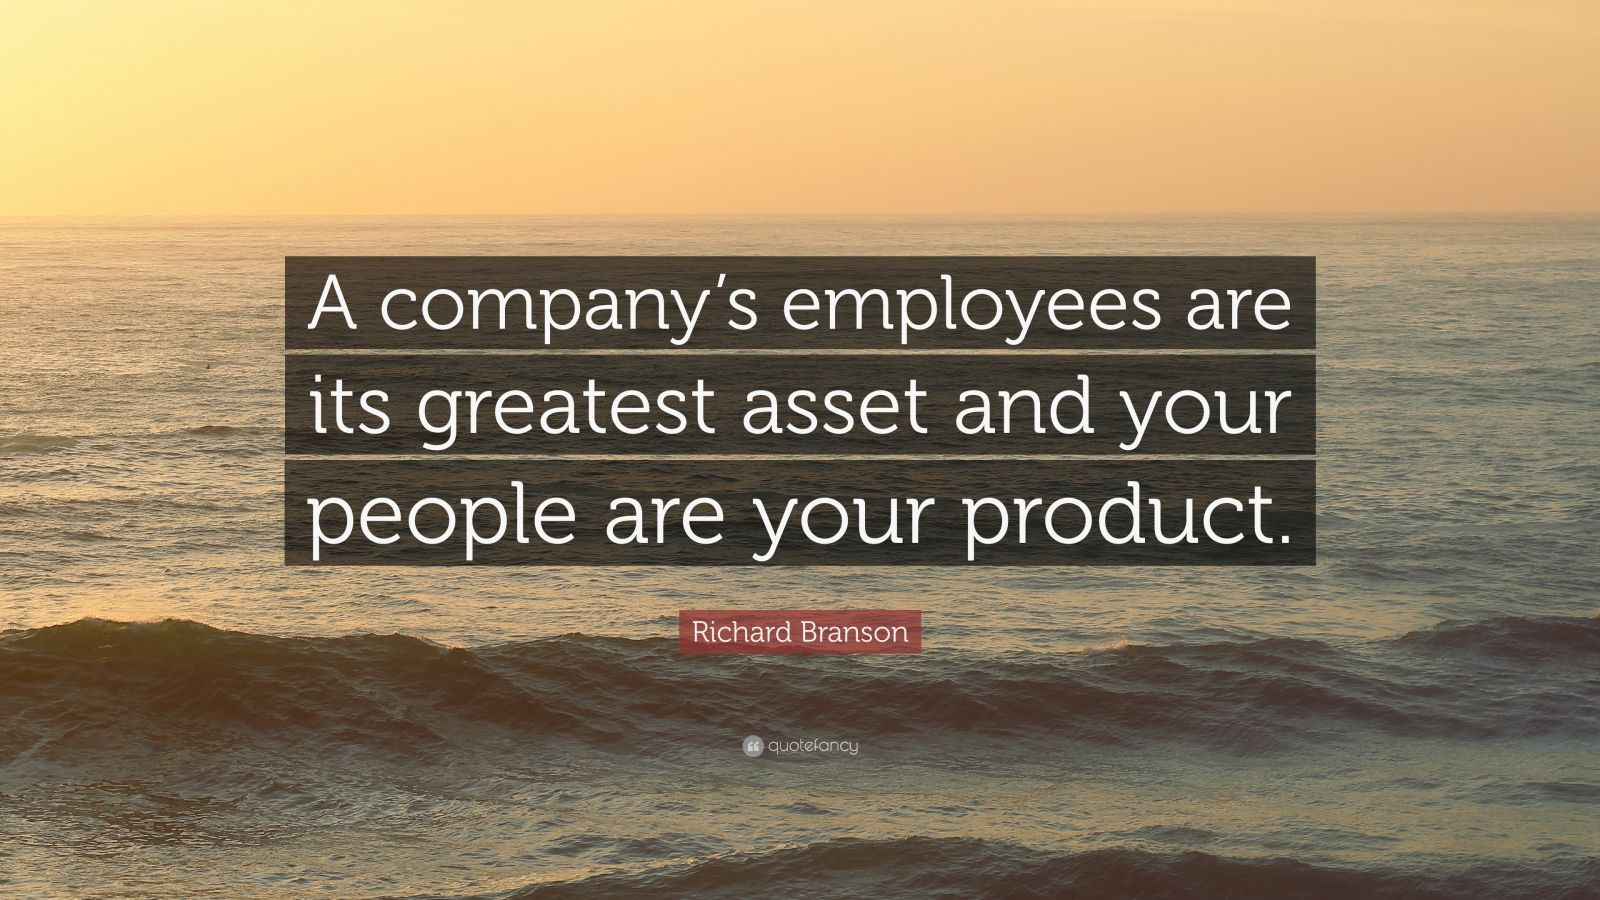 Steve Jobs Motivational Quotes Wallpaper Richard Branson Quote A Company S Employees Are Its